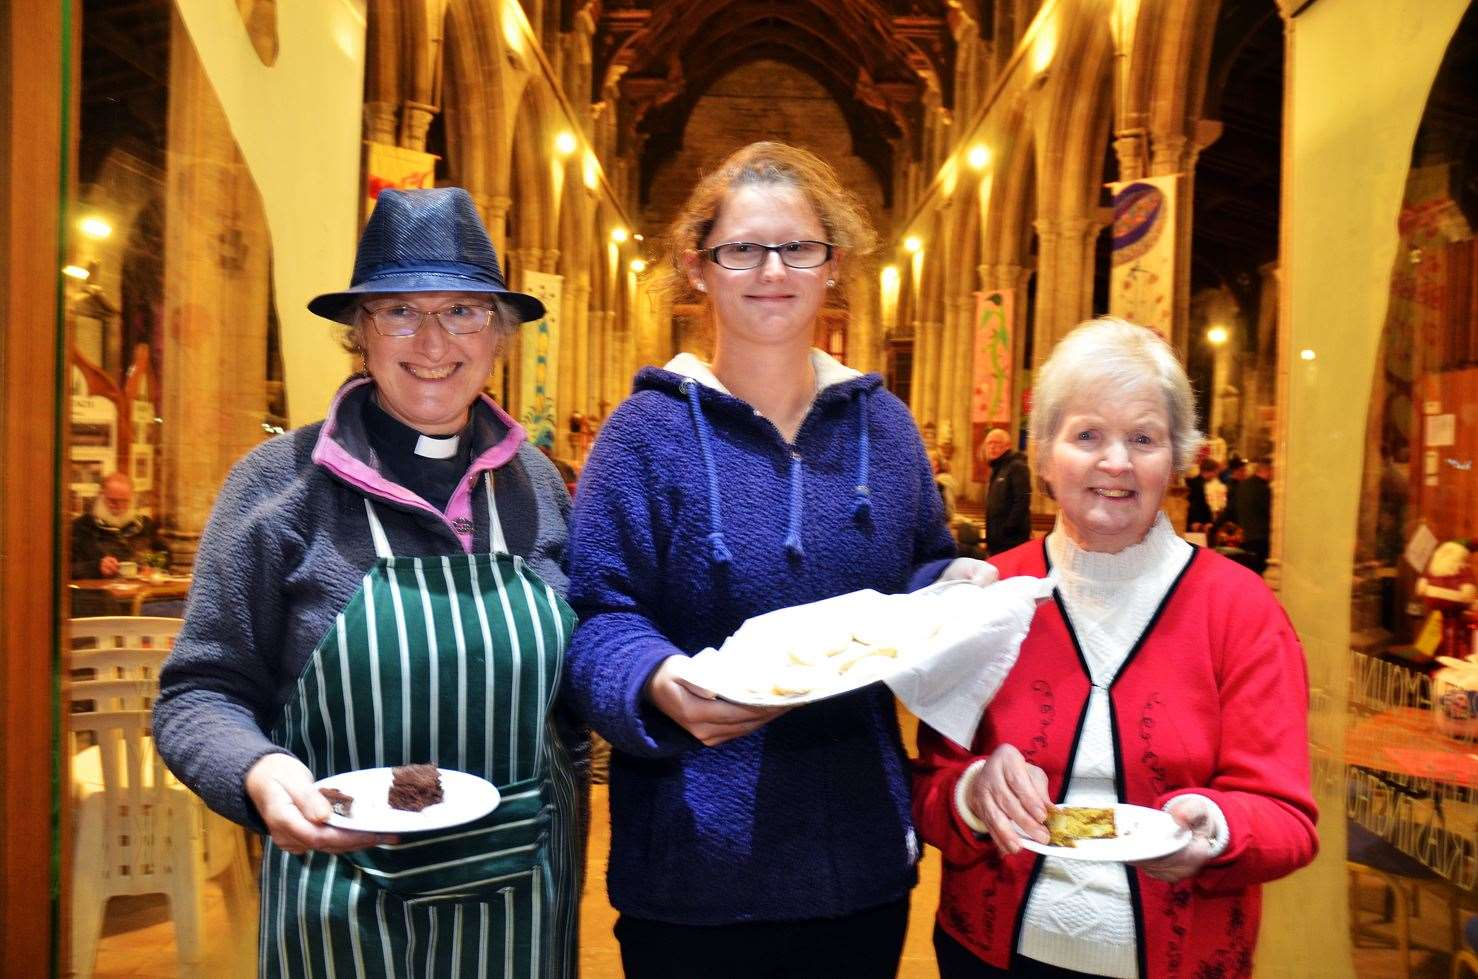 Cakes and hot drinks in the All Saints Church last year at the event. Pictured is: Rev Rosamund Seal, Autumn Ball and Joan Henderson.